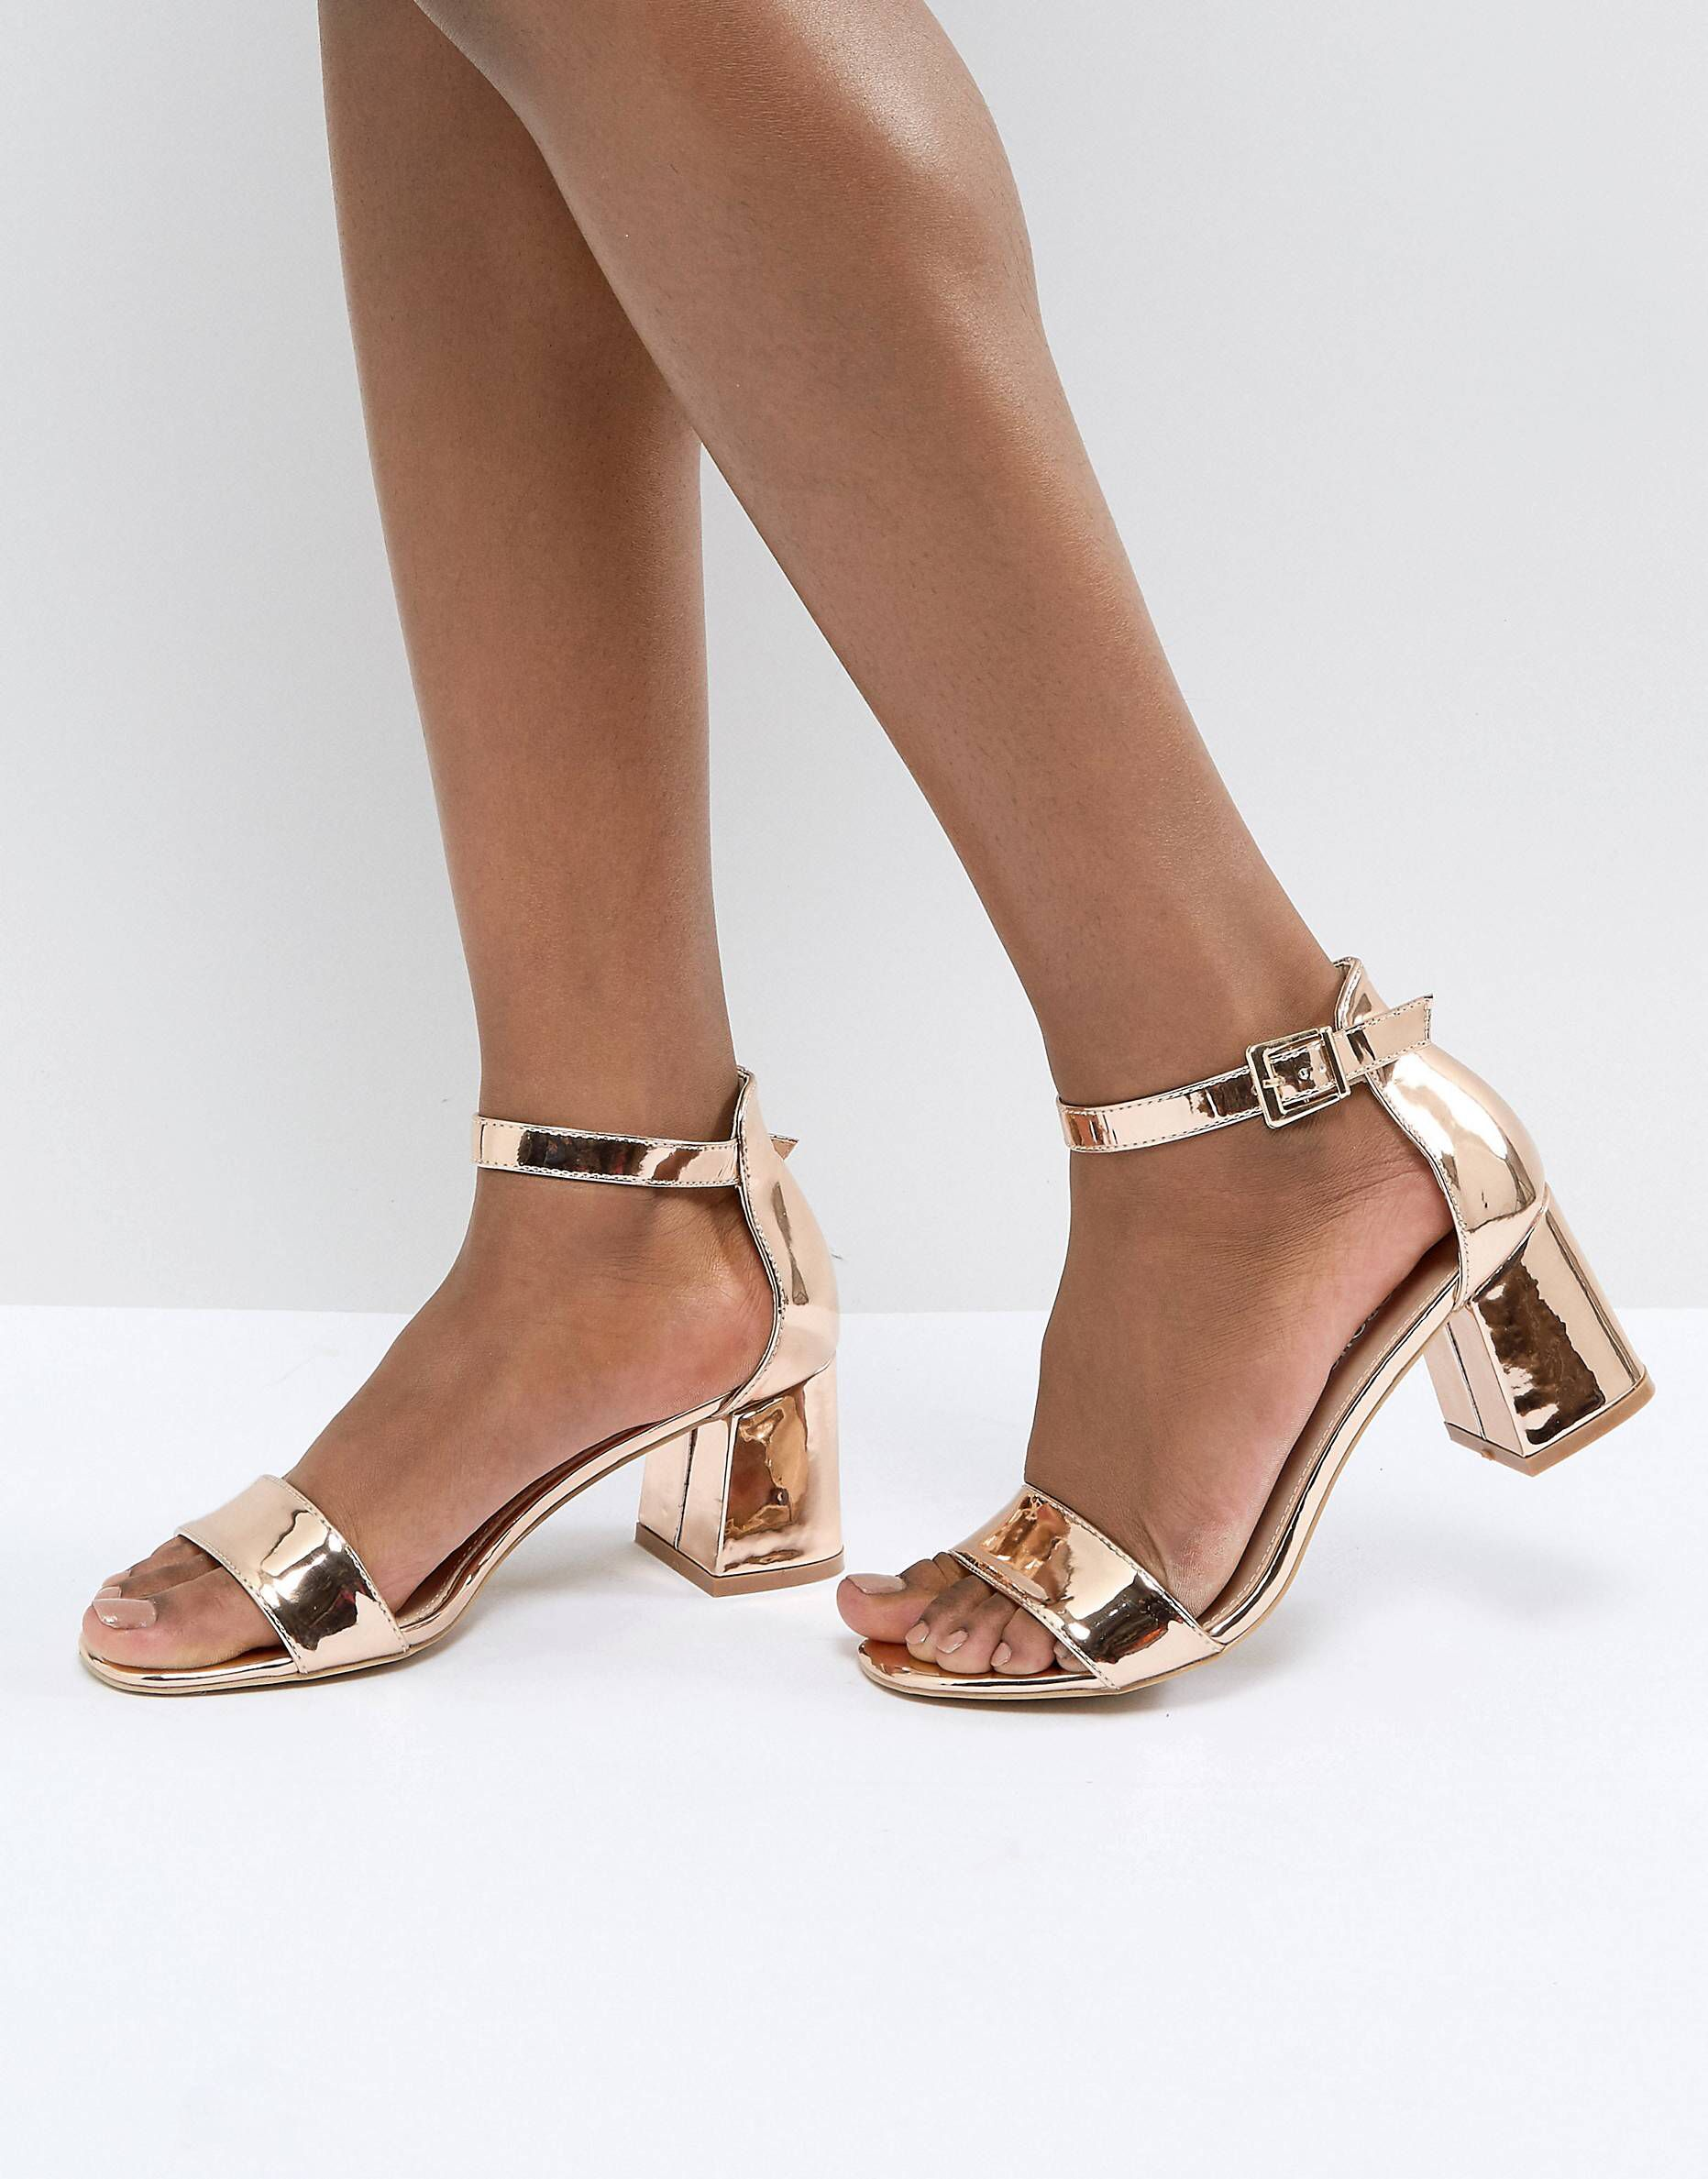 Just When I Thought I Didn T Need Something New From Asos I Kinda Do Heels Block Sandals Casual Shoes Women